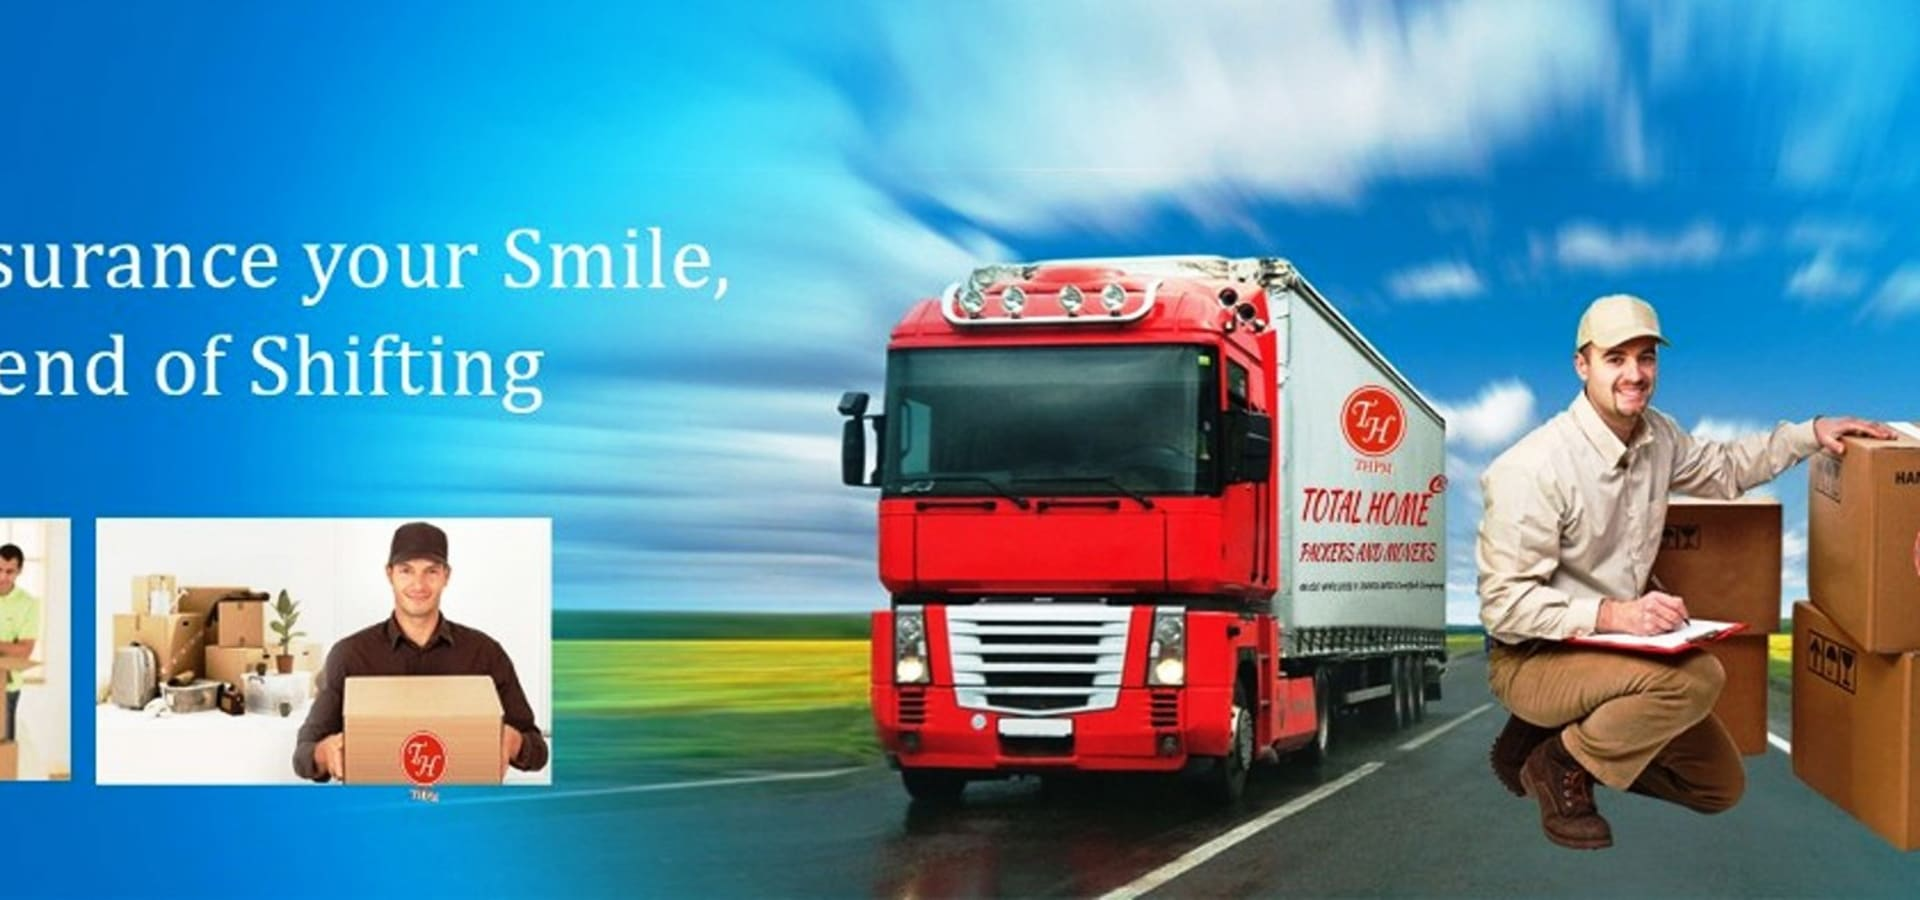 Total Home Packers and Movers